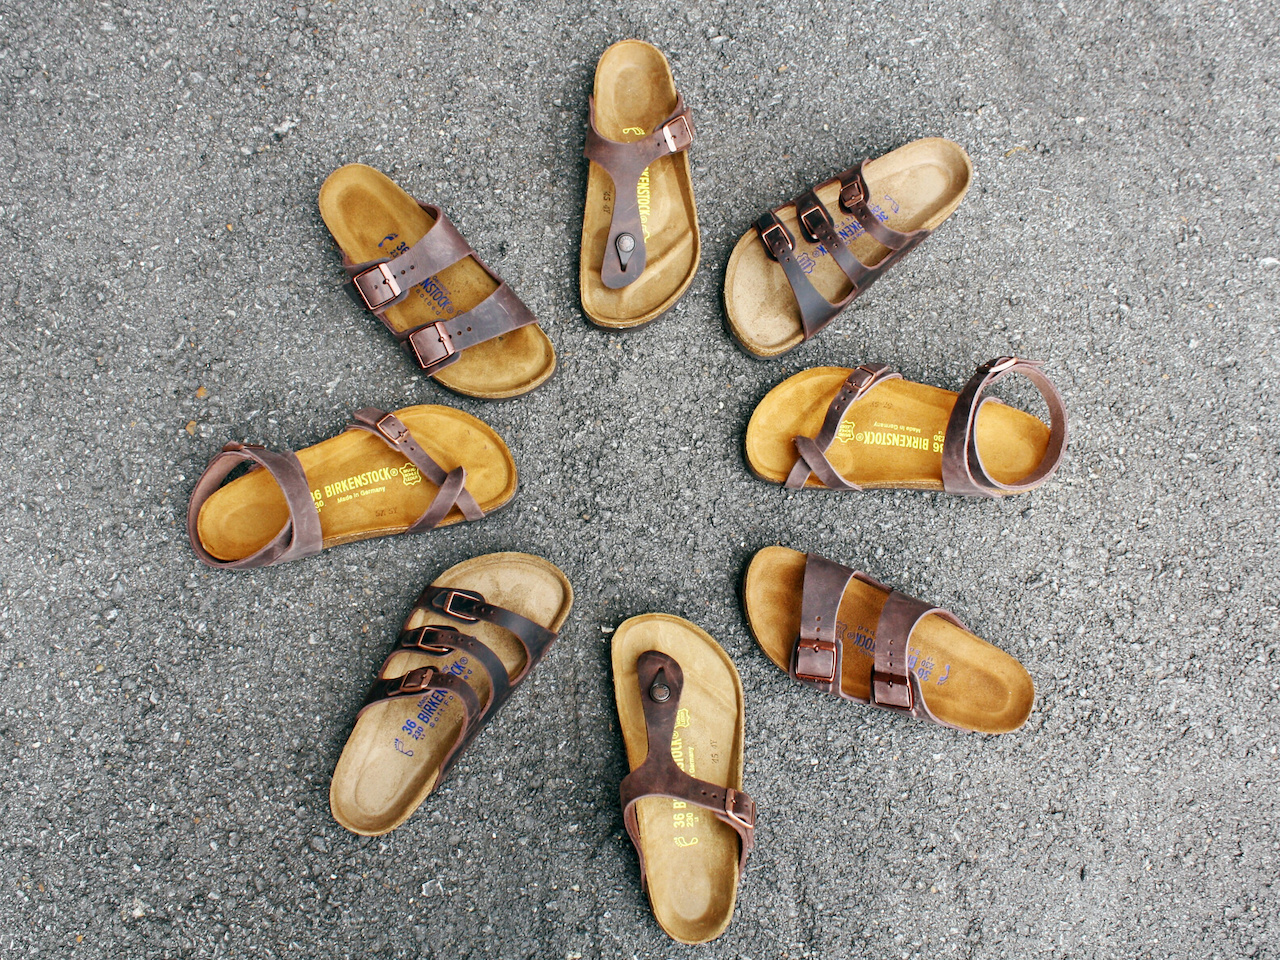 Birkenstocks, ranging from $89.95 to $135, at Alabama Outdoors